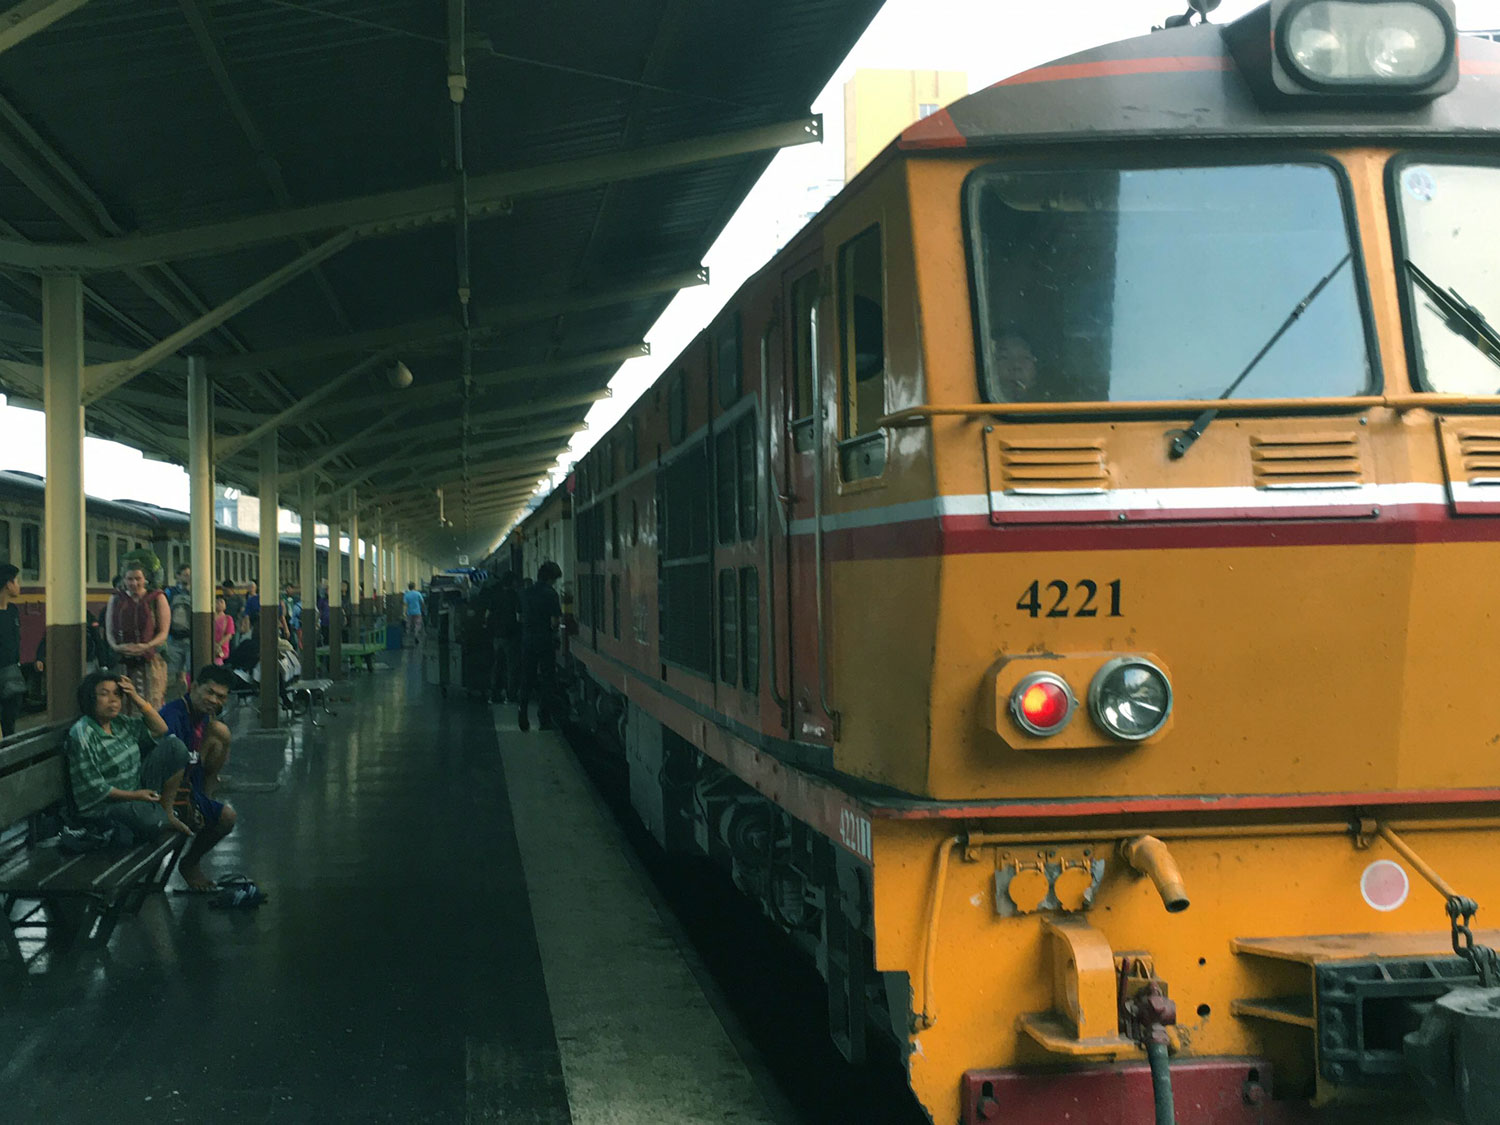 Catch the overnight sleeper train to Bangkok